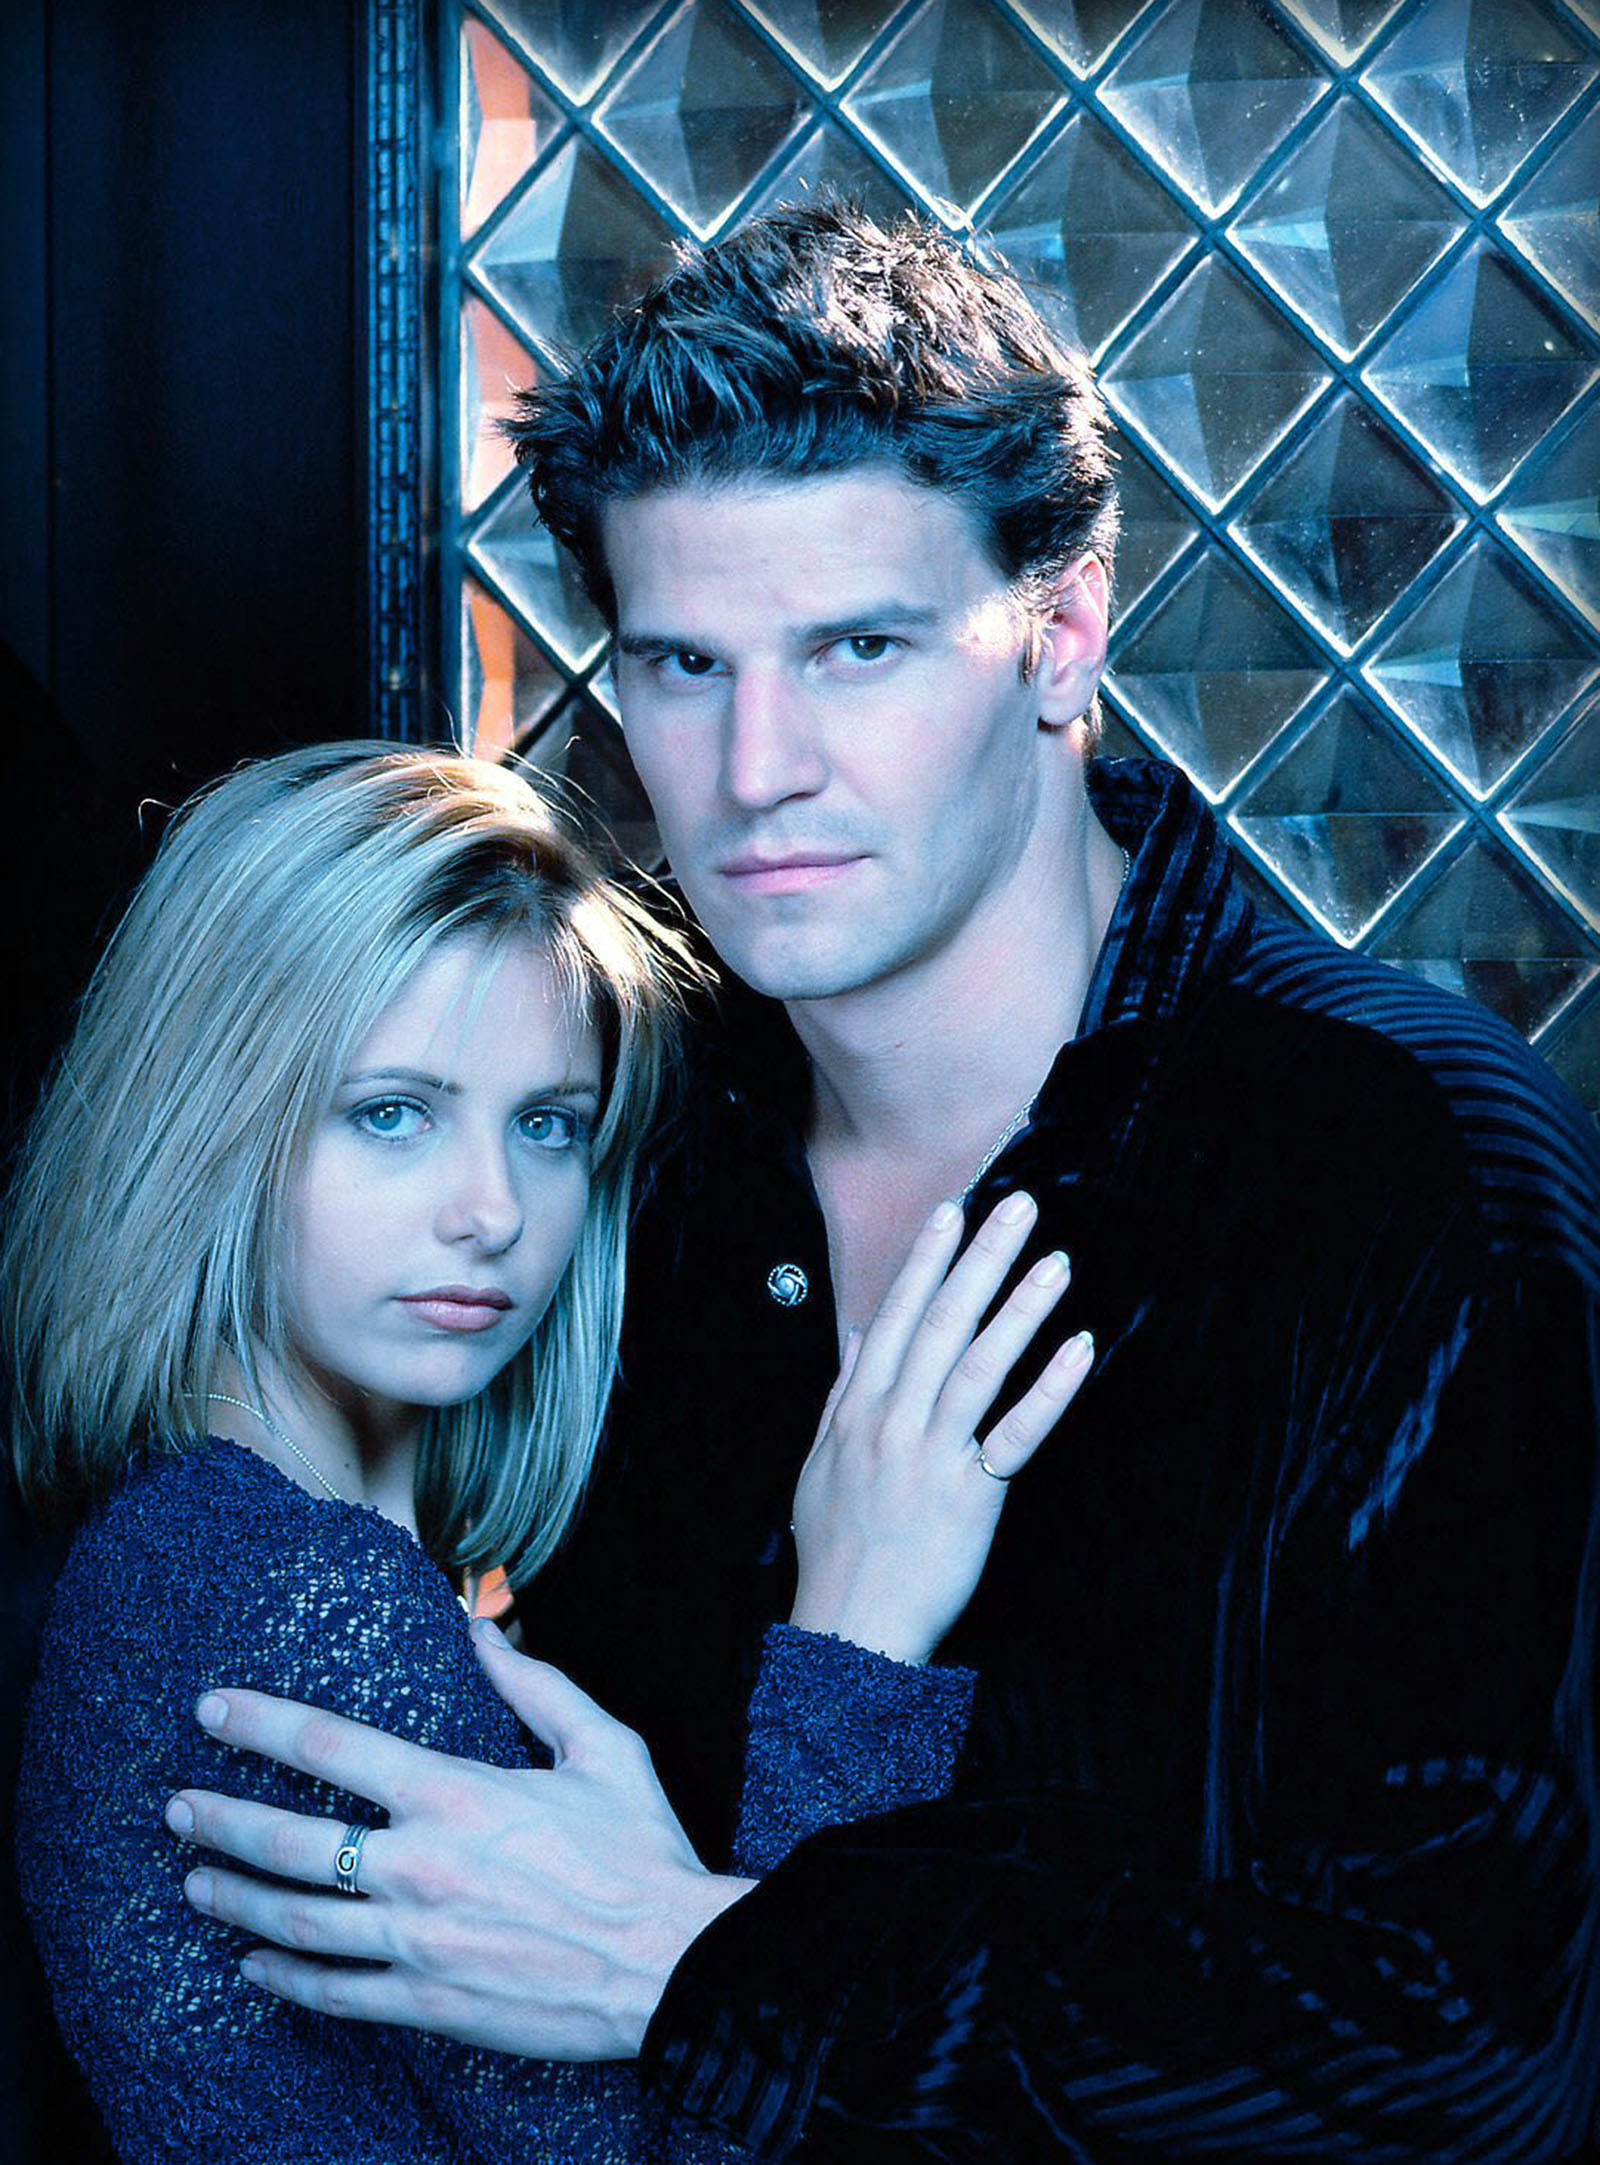 Buffy 2013 gallery 10 angel david boreanaz photos dvdbash